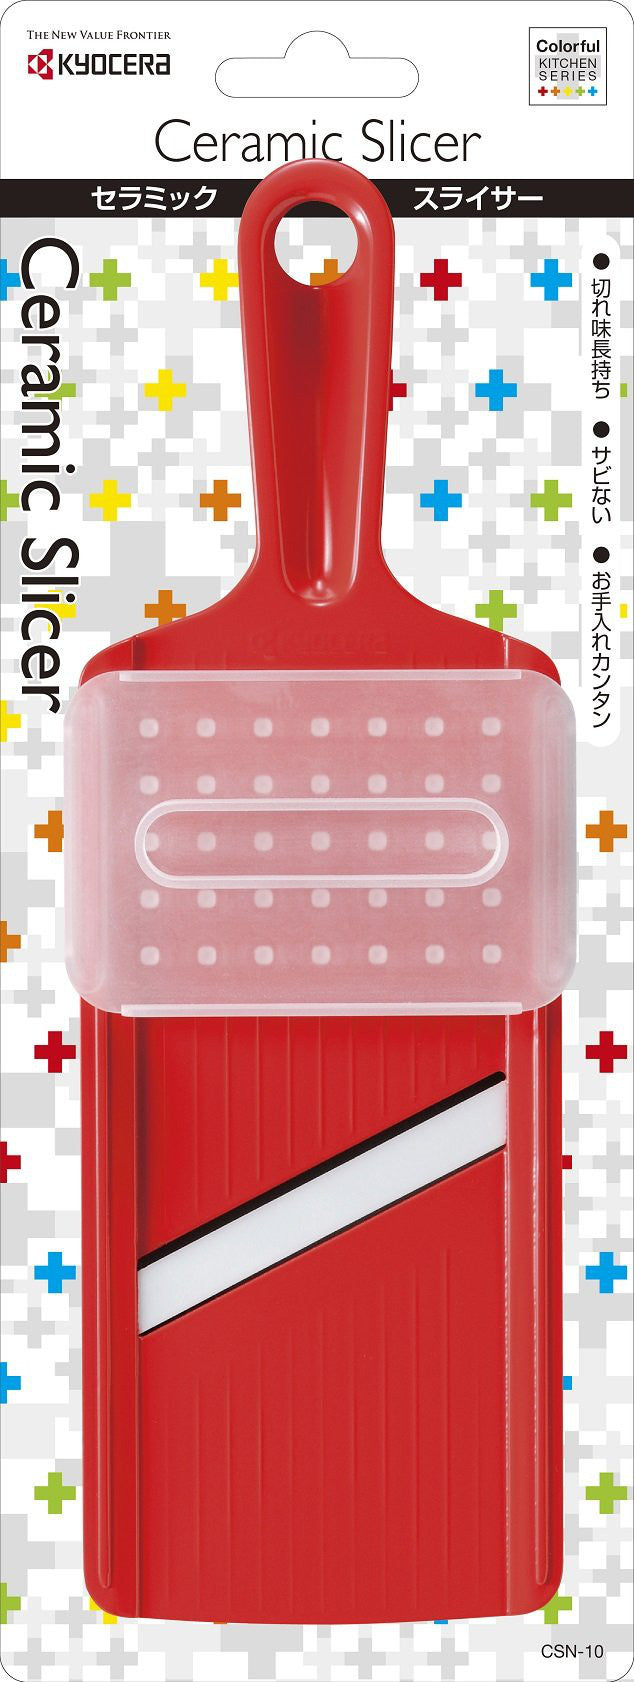 Red CSN-10RD New with safety device Kyocera ceramic slicer